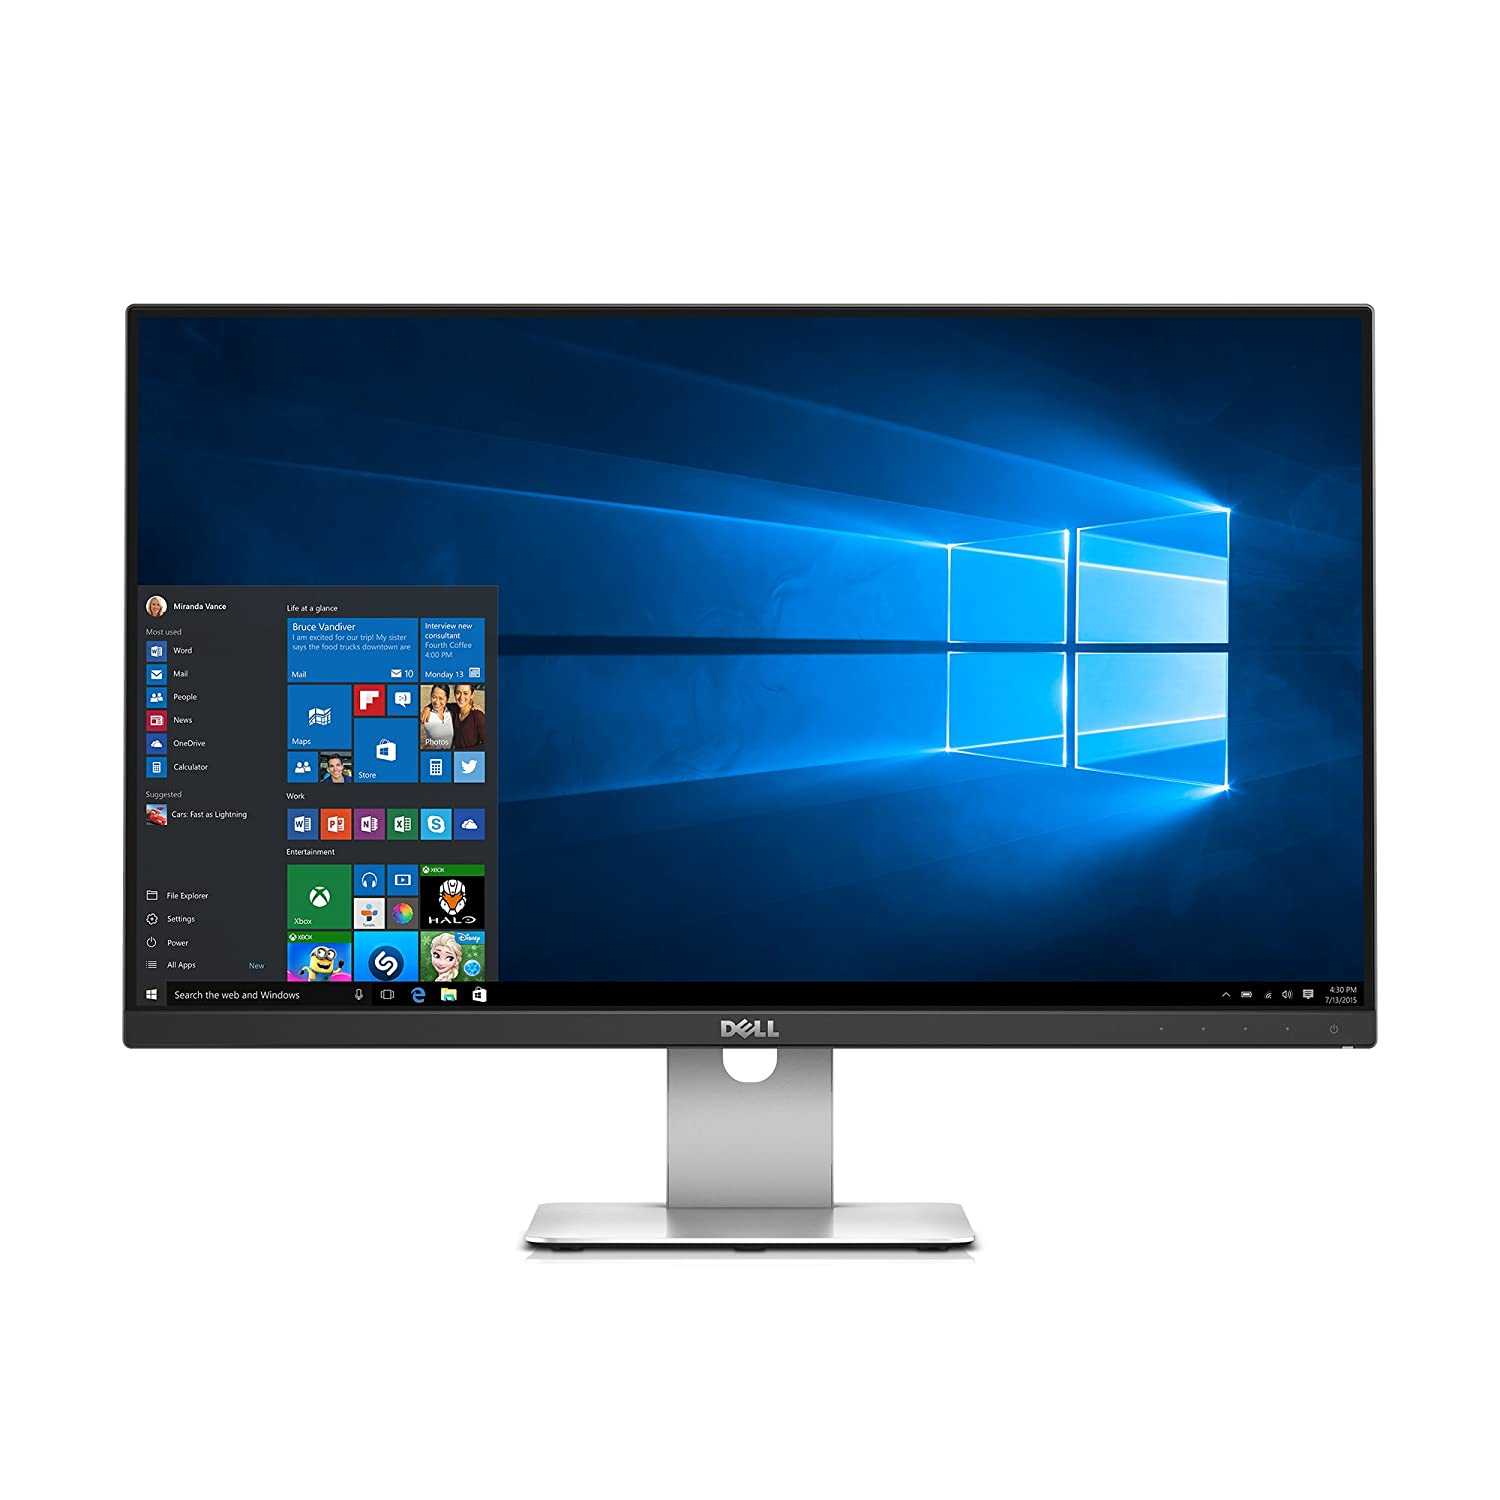 4959155769ae Amazon.com: Dell S2415H 24-Inch Screen LED-Lit Monitor: Computers &  Accessories